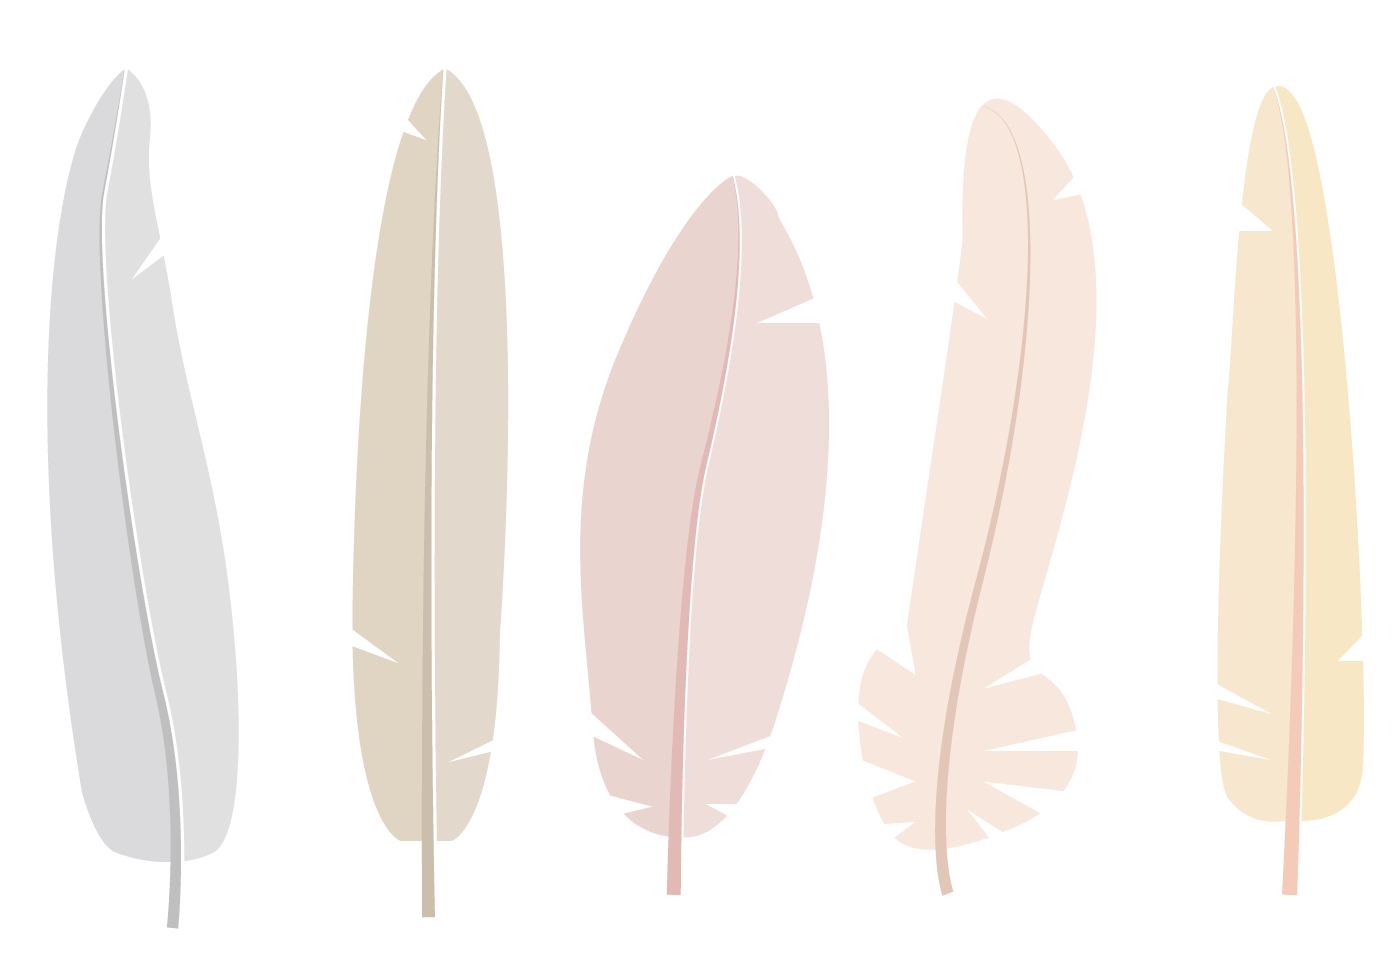 ... Feathers Vector - Download Free Vector Art, Stock Graphics & Images